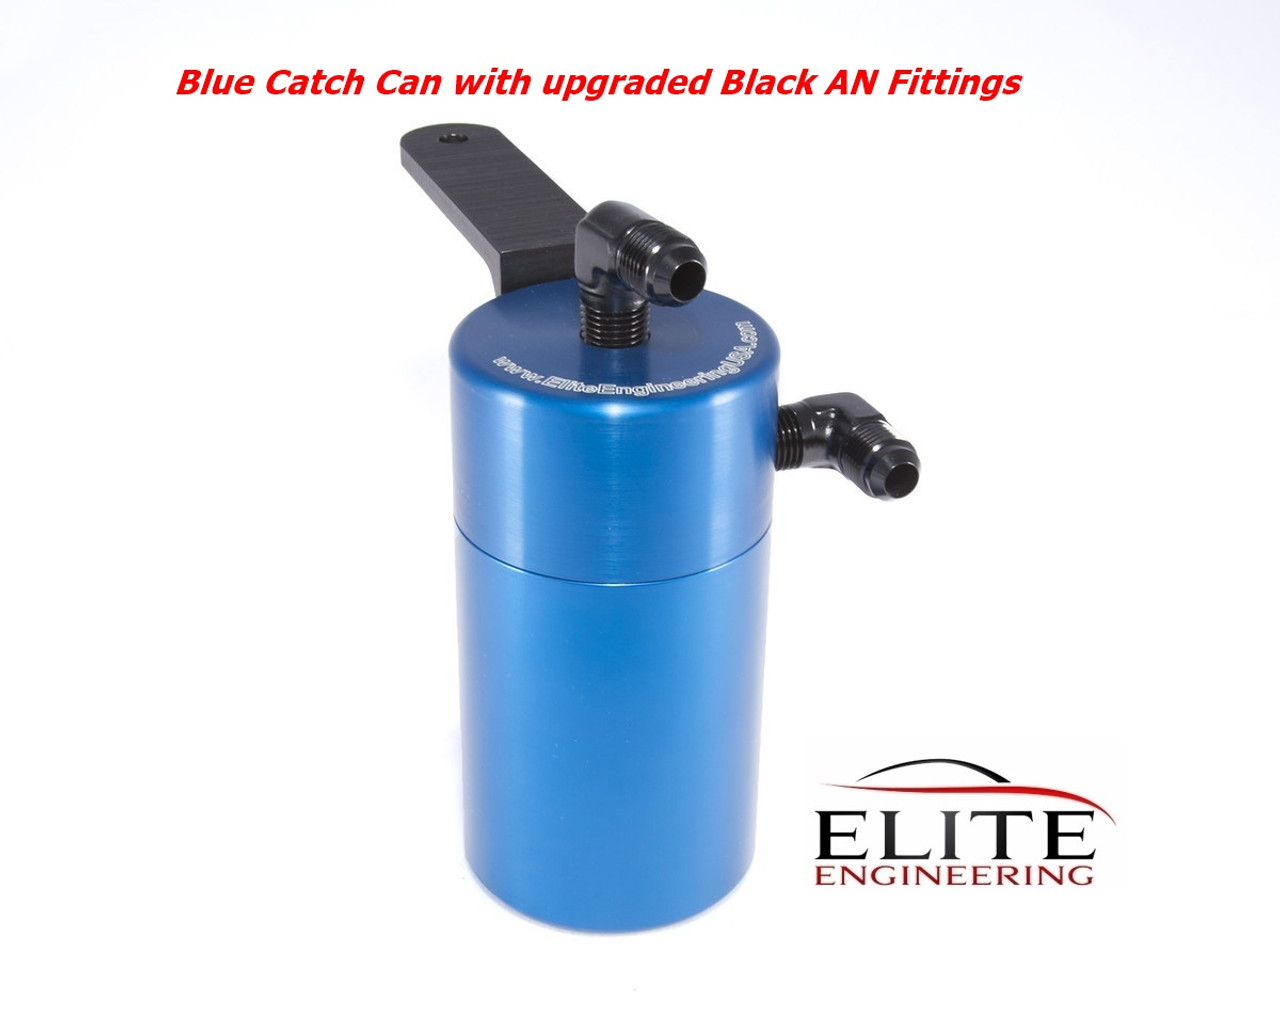 Elite Engineering Standard PCV Oil Catch Can /& Hardware with Black AN Fittings for 2008-2013 Corvette LS3 RED